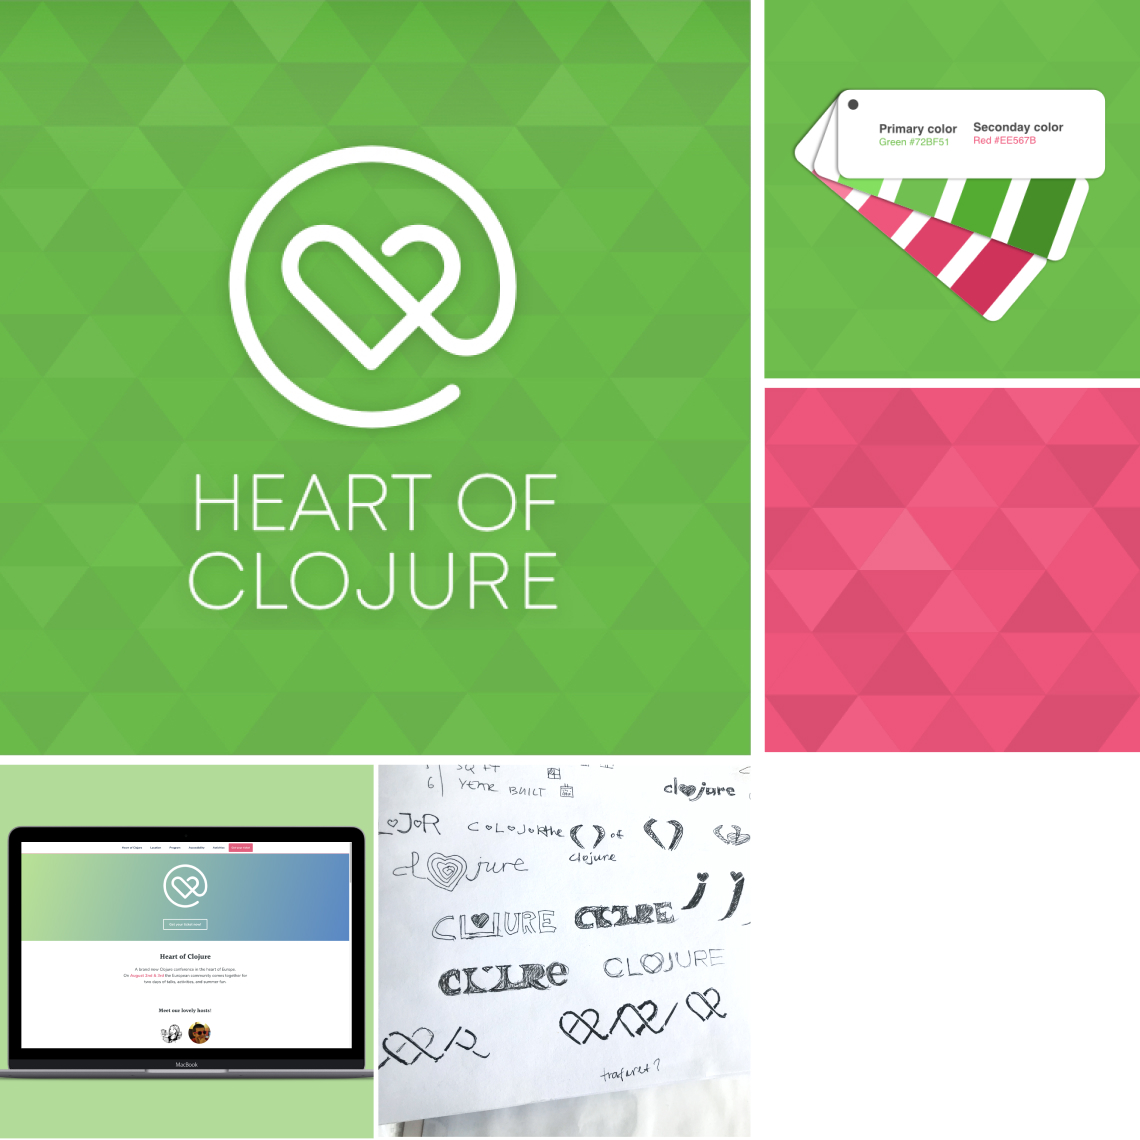 Heart of Clojure project